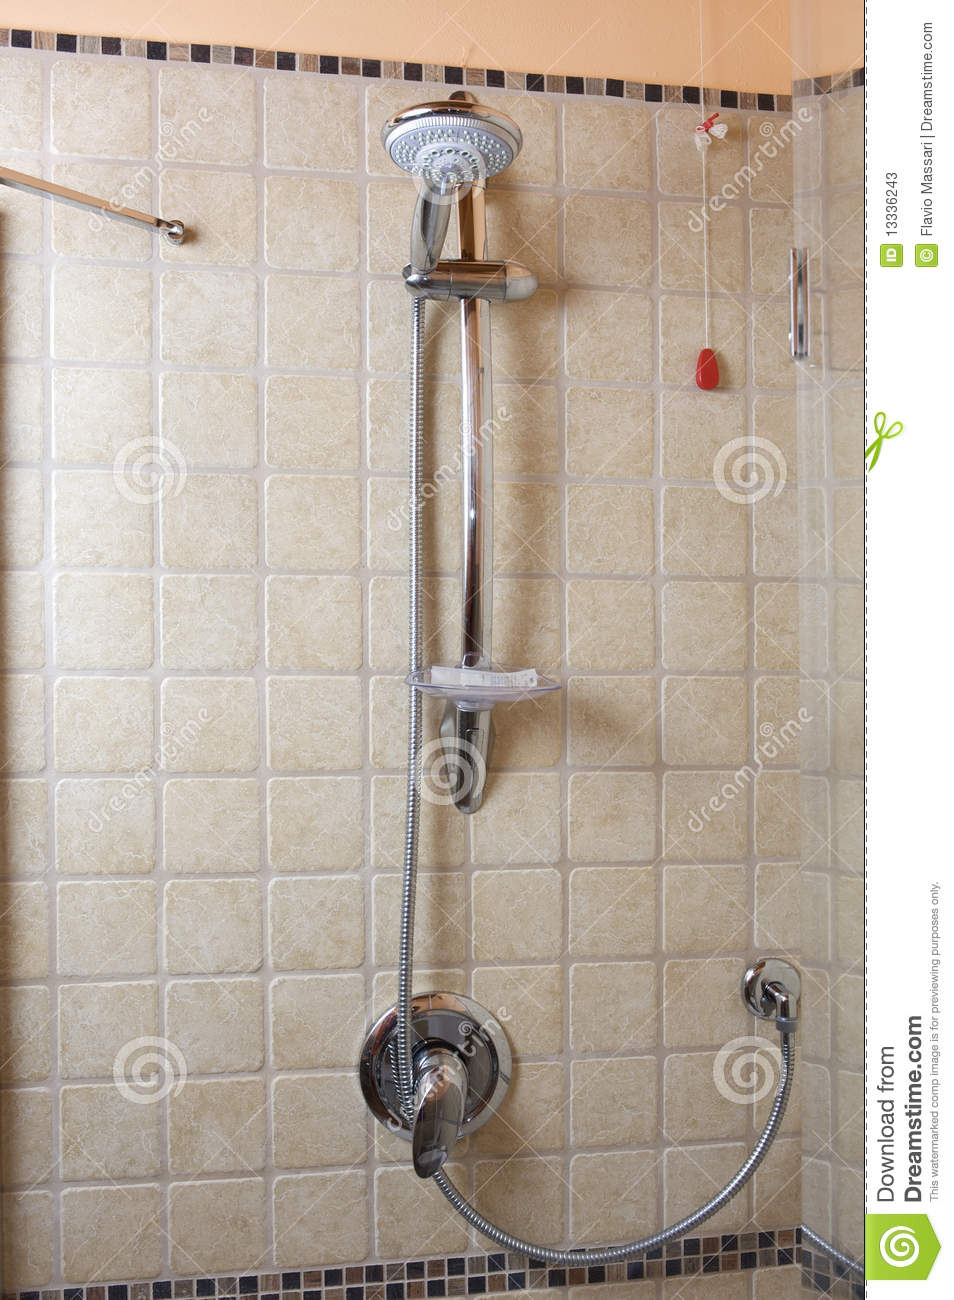 Modern Wall Faucets Shower Head And Faucet Stock Photos - Image: 13336243